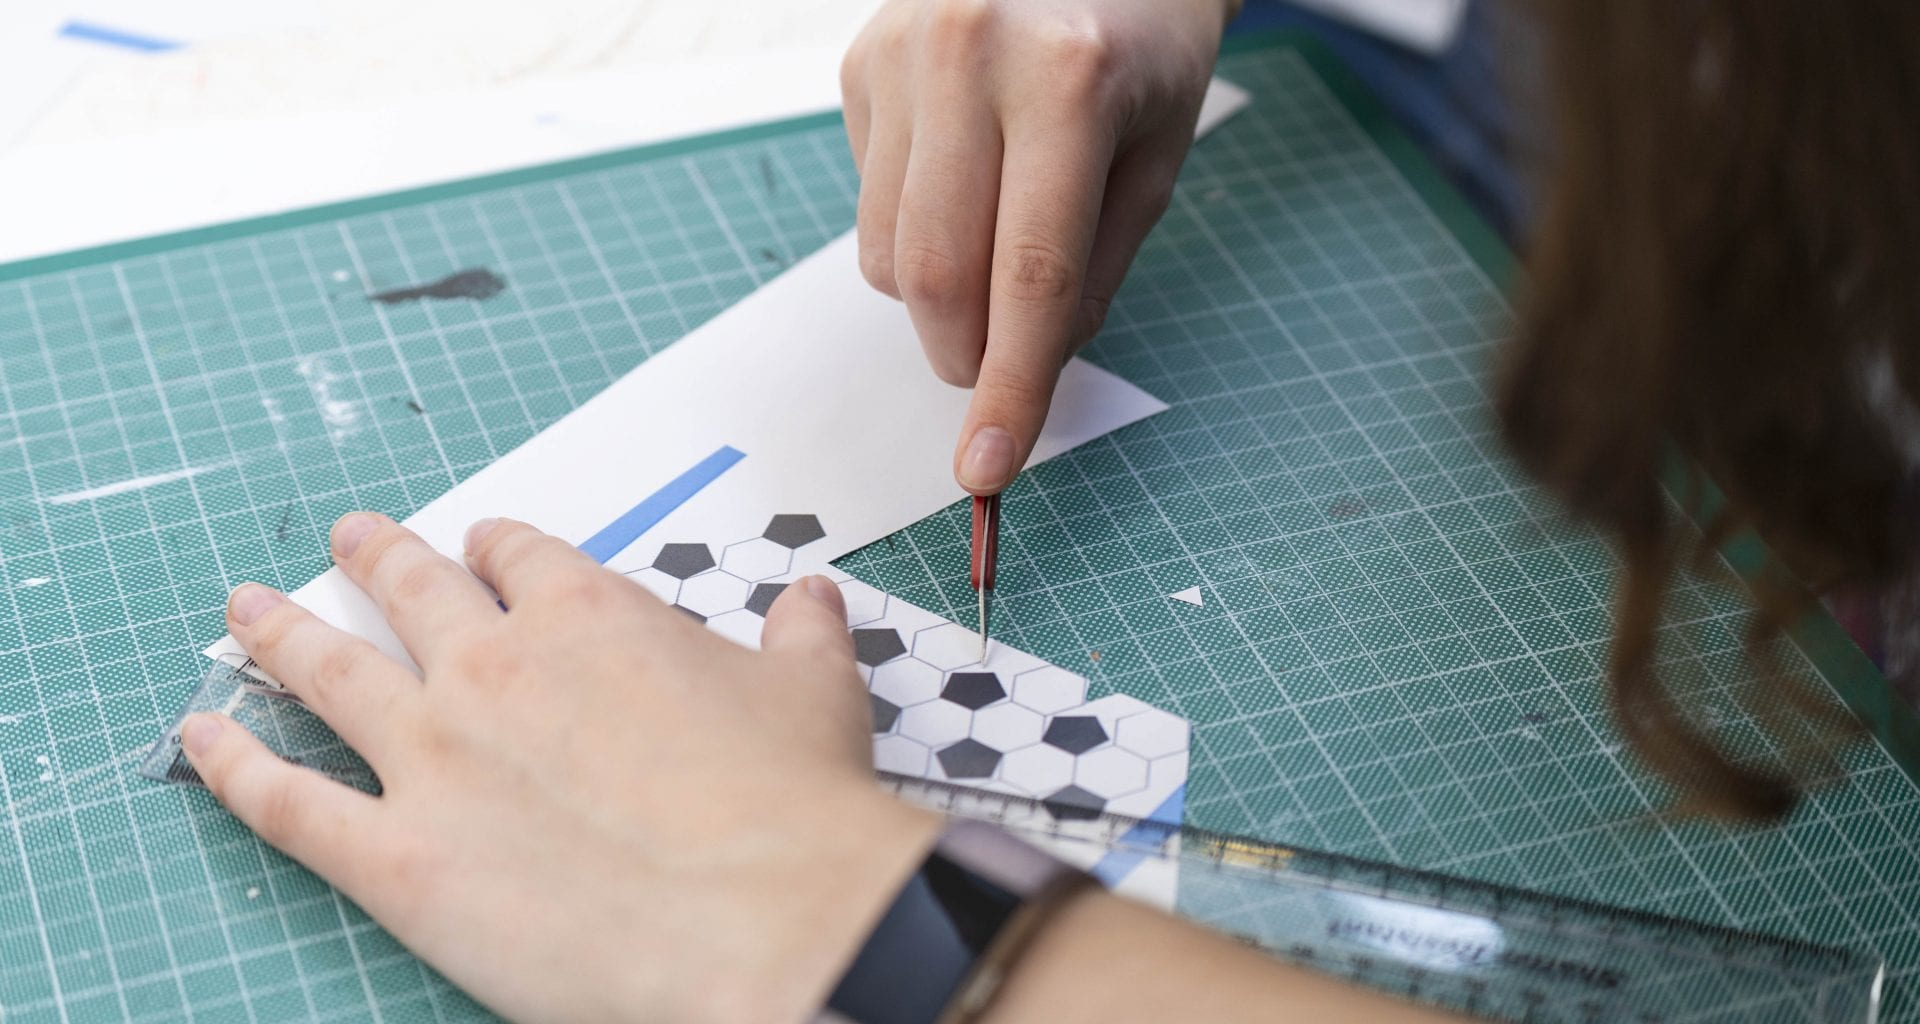 Image of a student using an exacto knife to cut out shapes